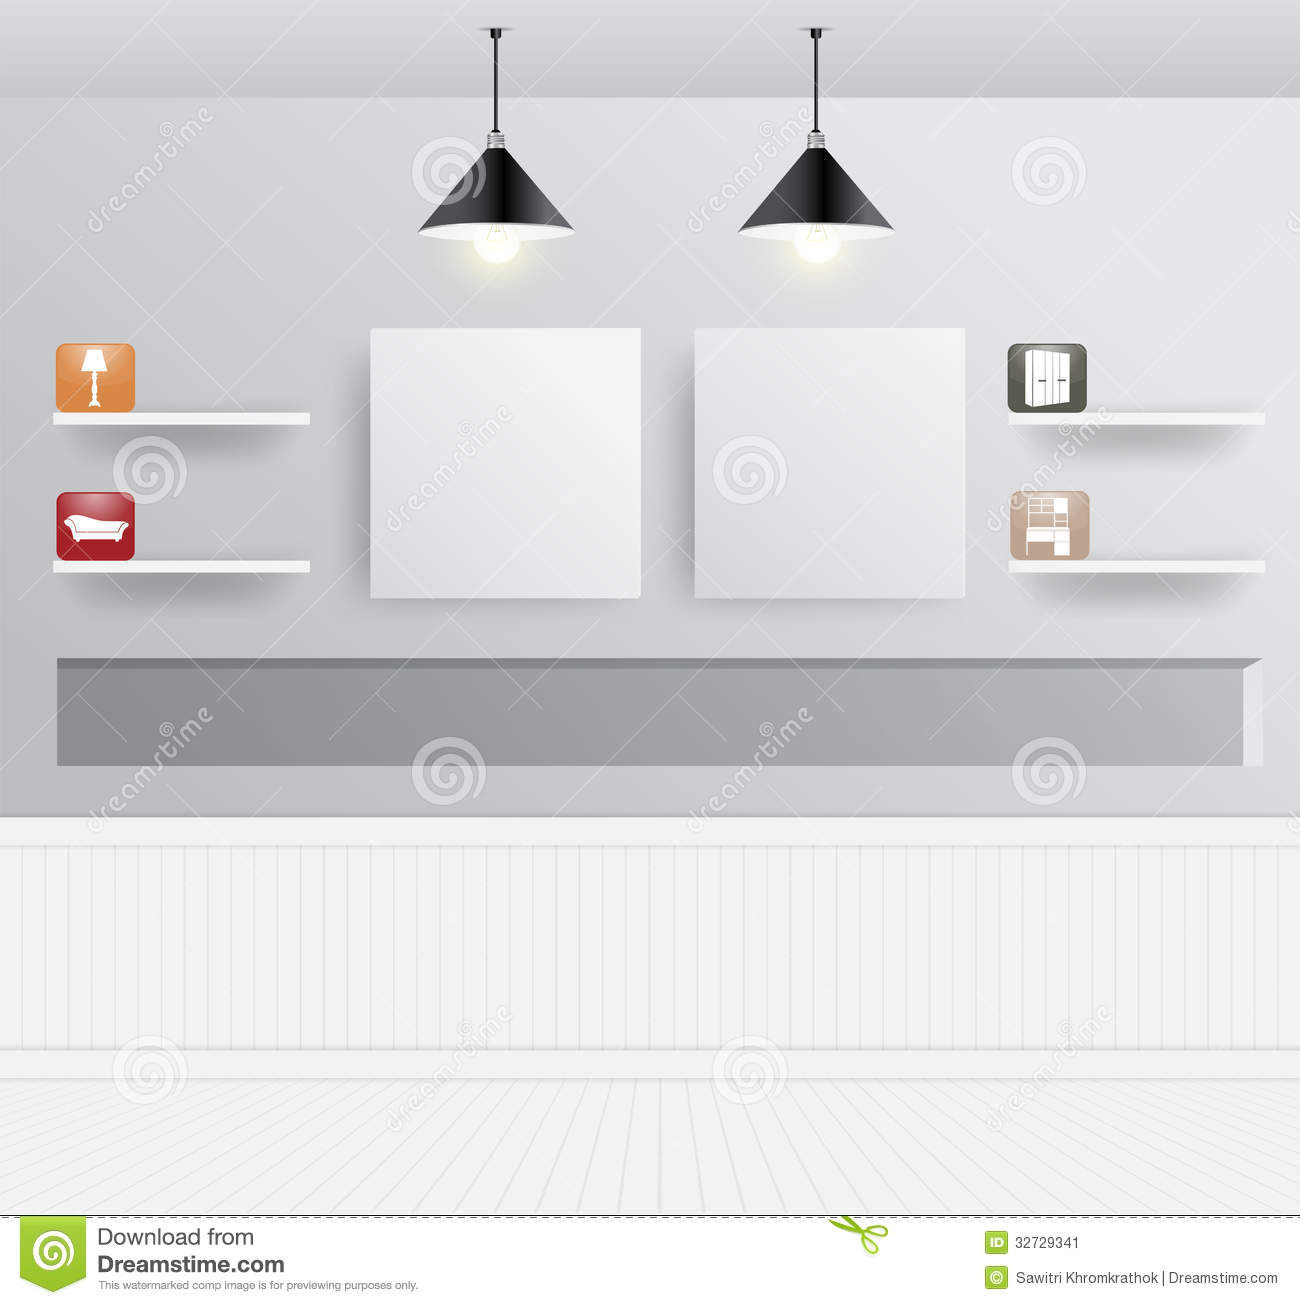 Home interior design vector - Home design and style